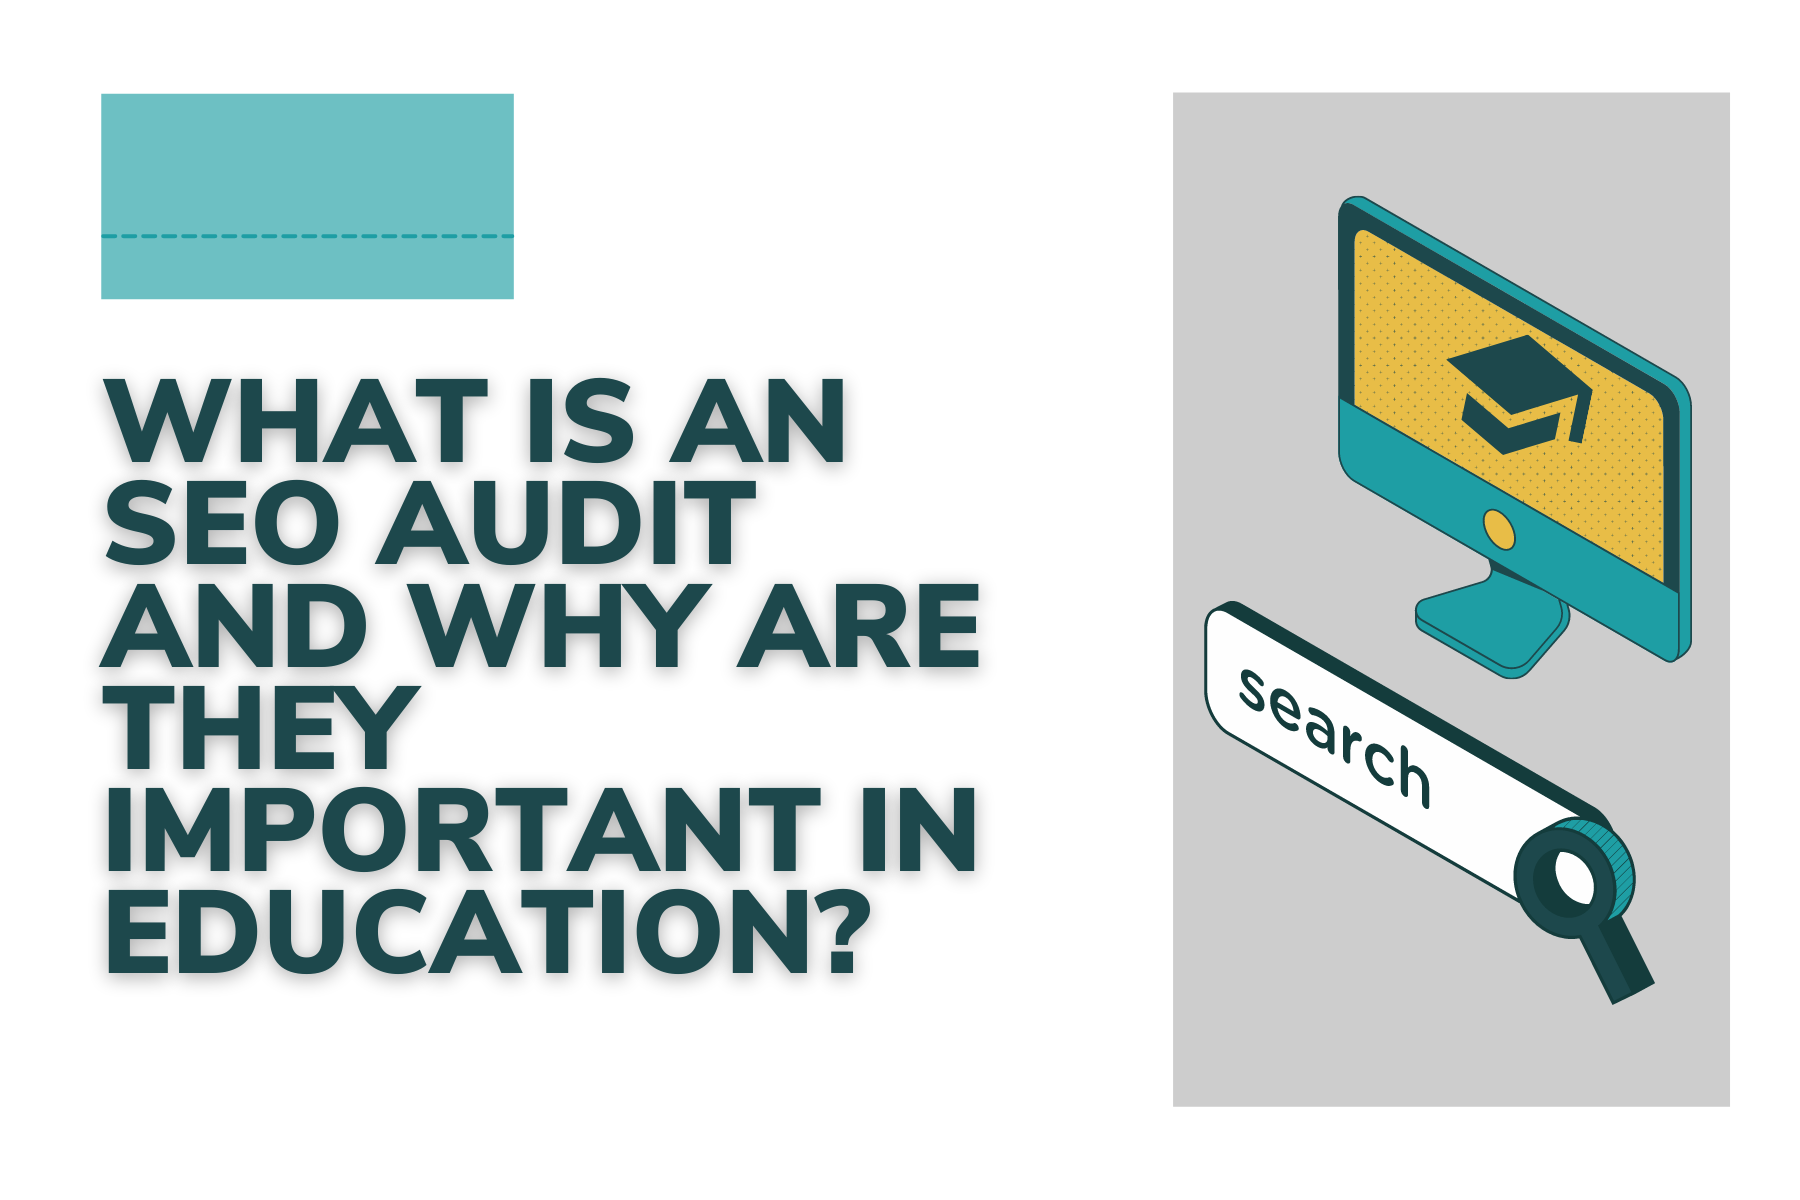 What is an SEO audit and why are they important in education?